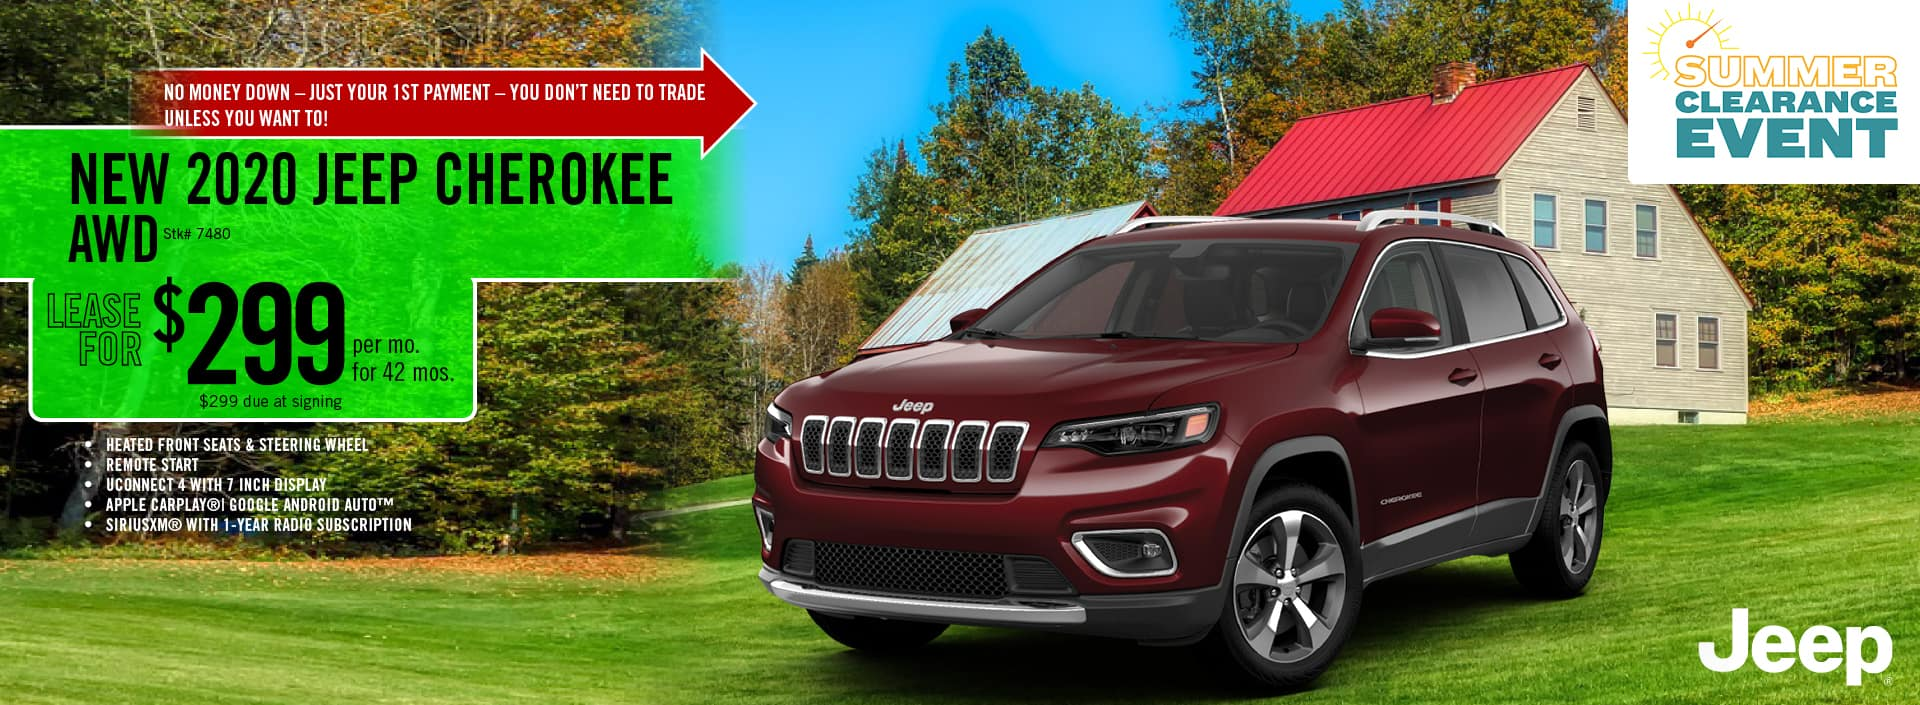 2020 Jeep Cherokee lease deal $299 for 42 months | Barre, VT